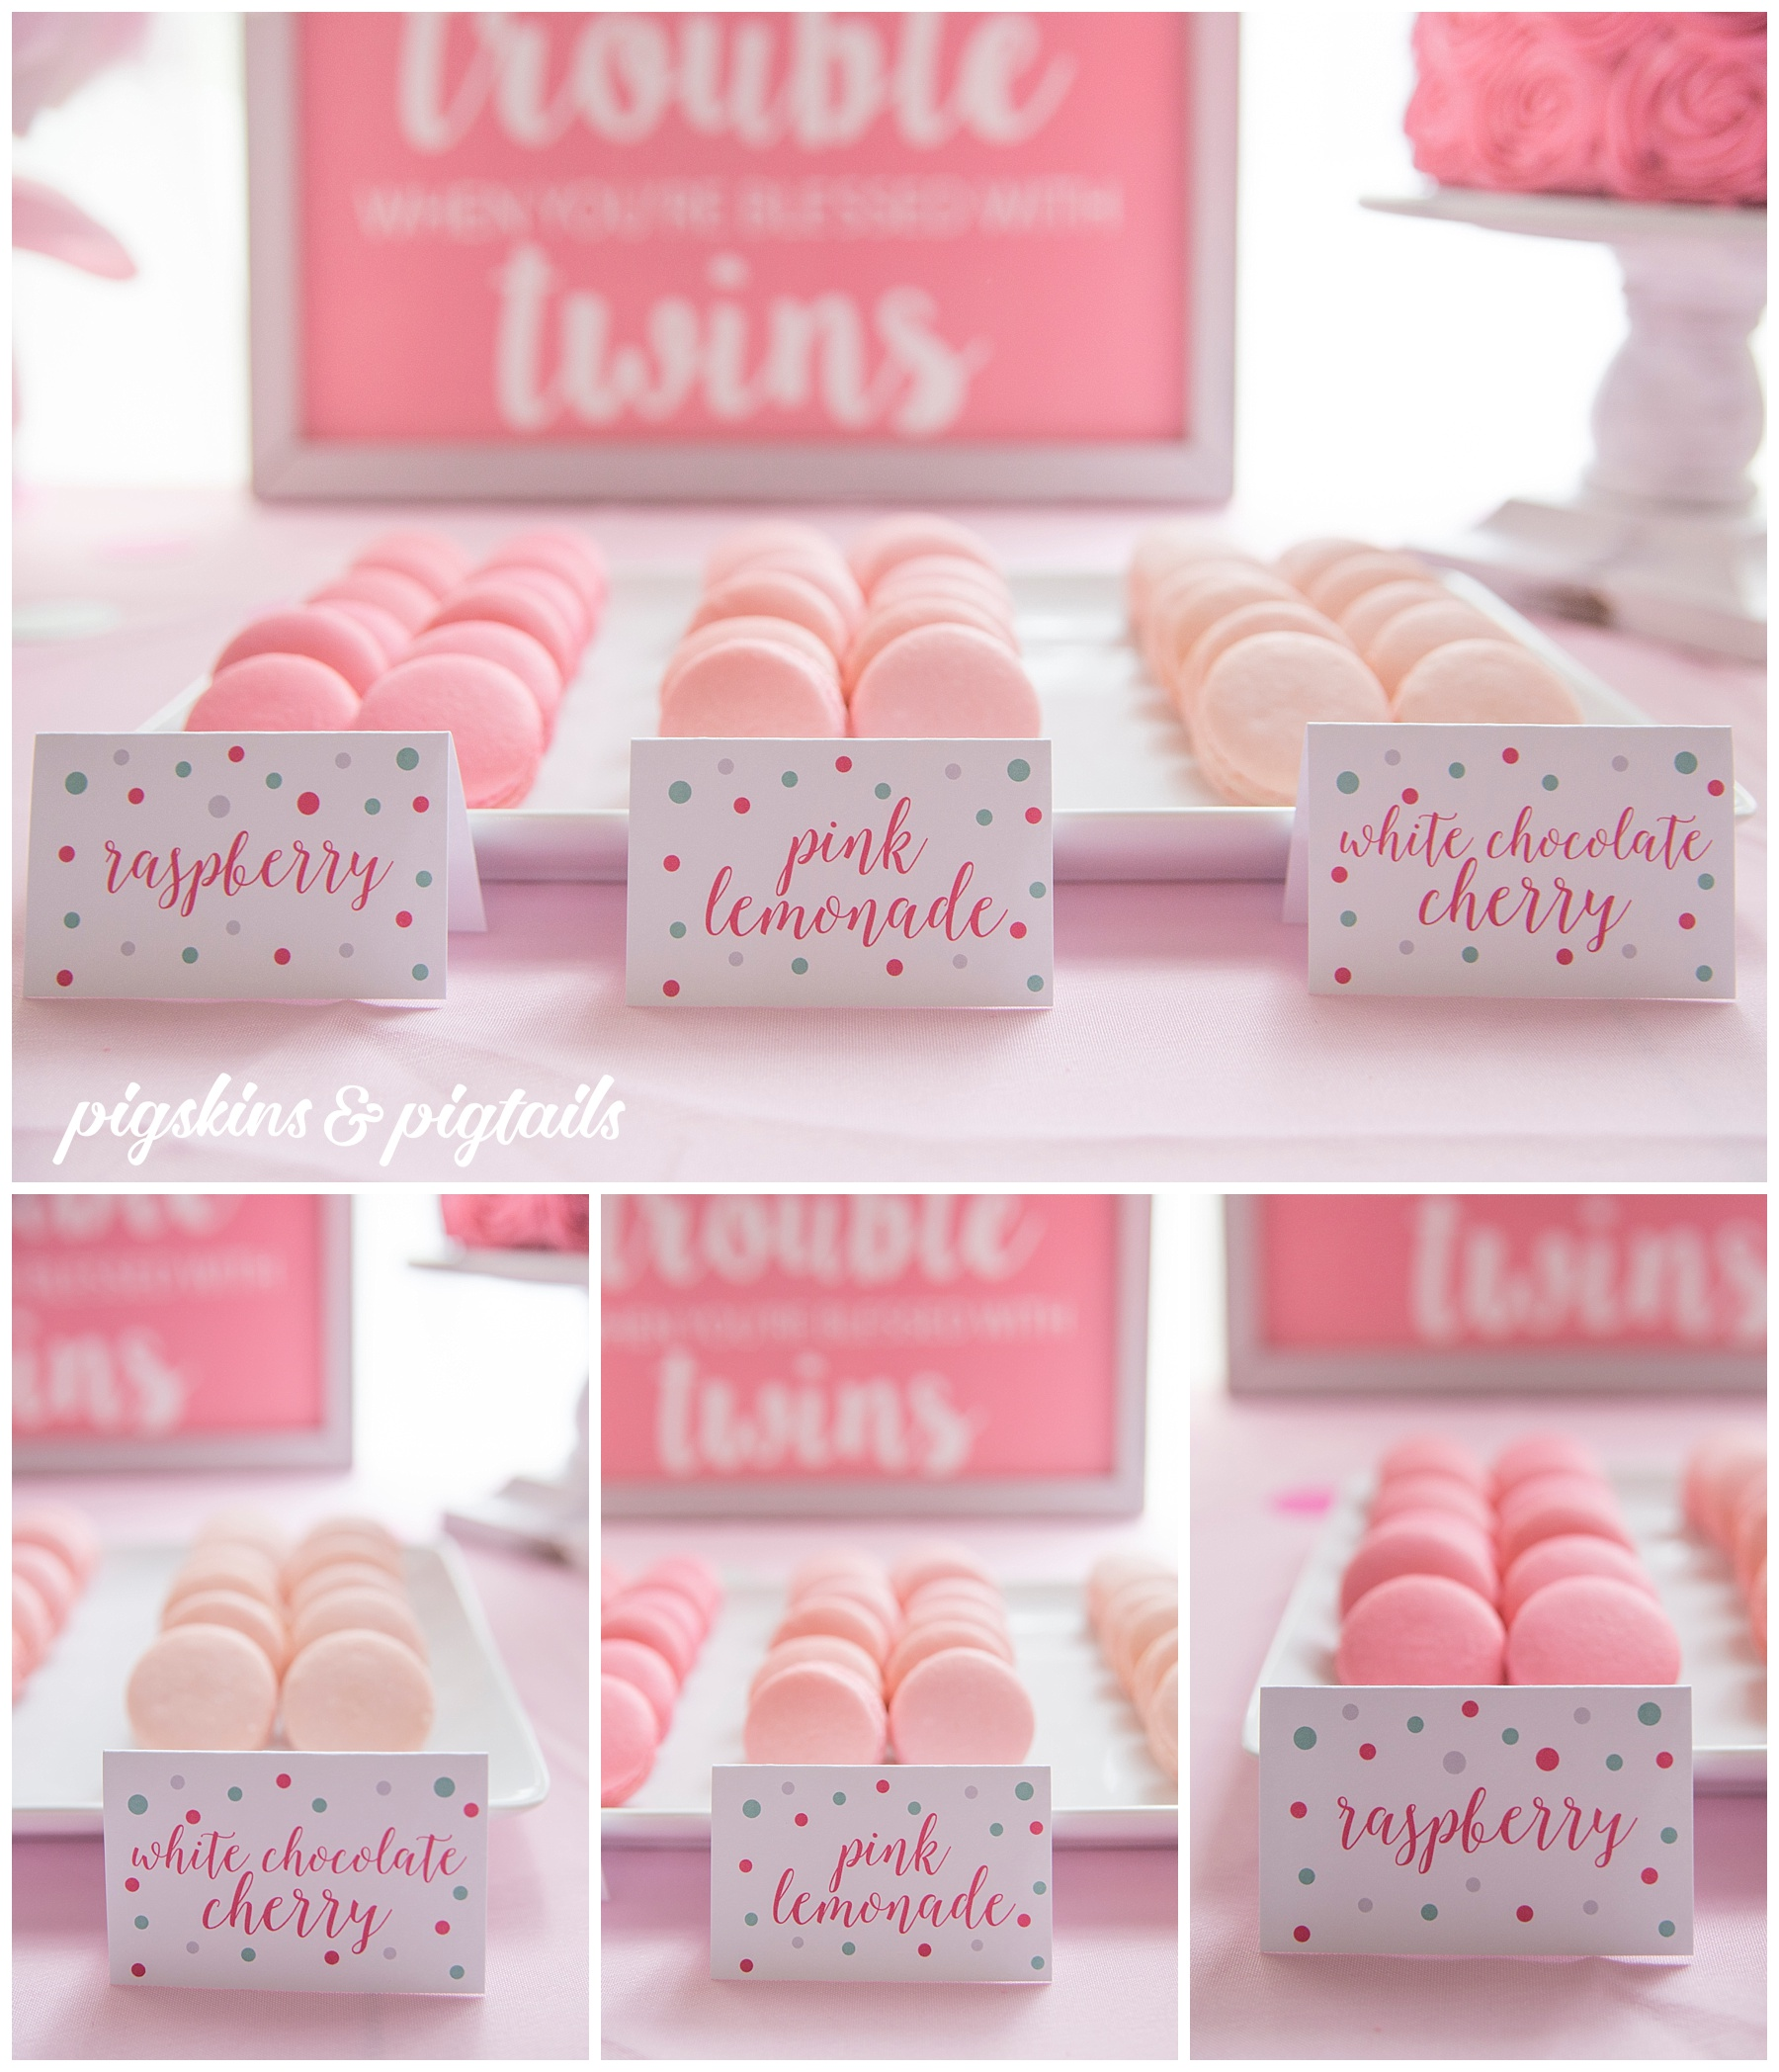 Macaron Flavors for Baby Shower